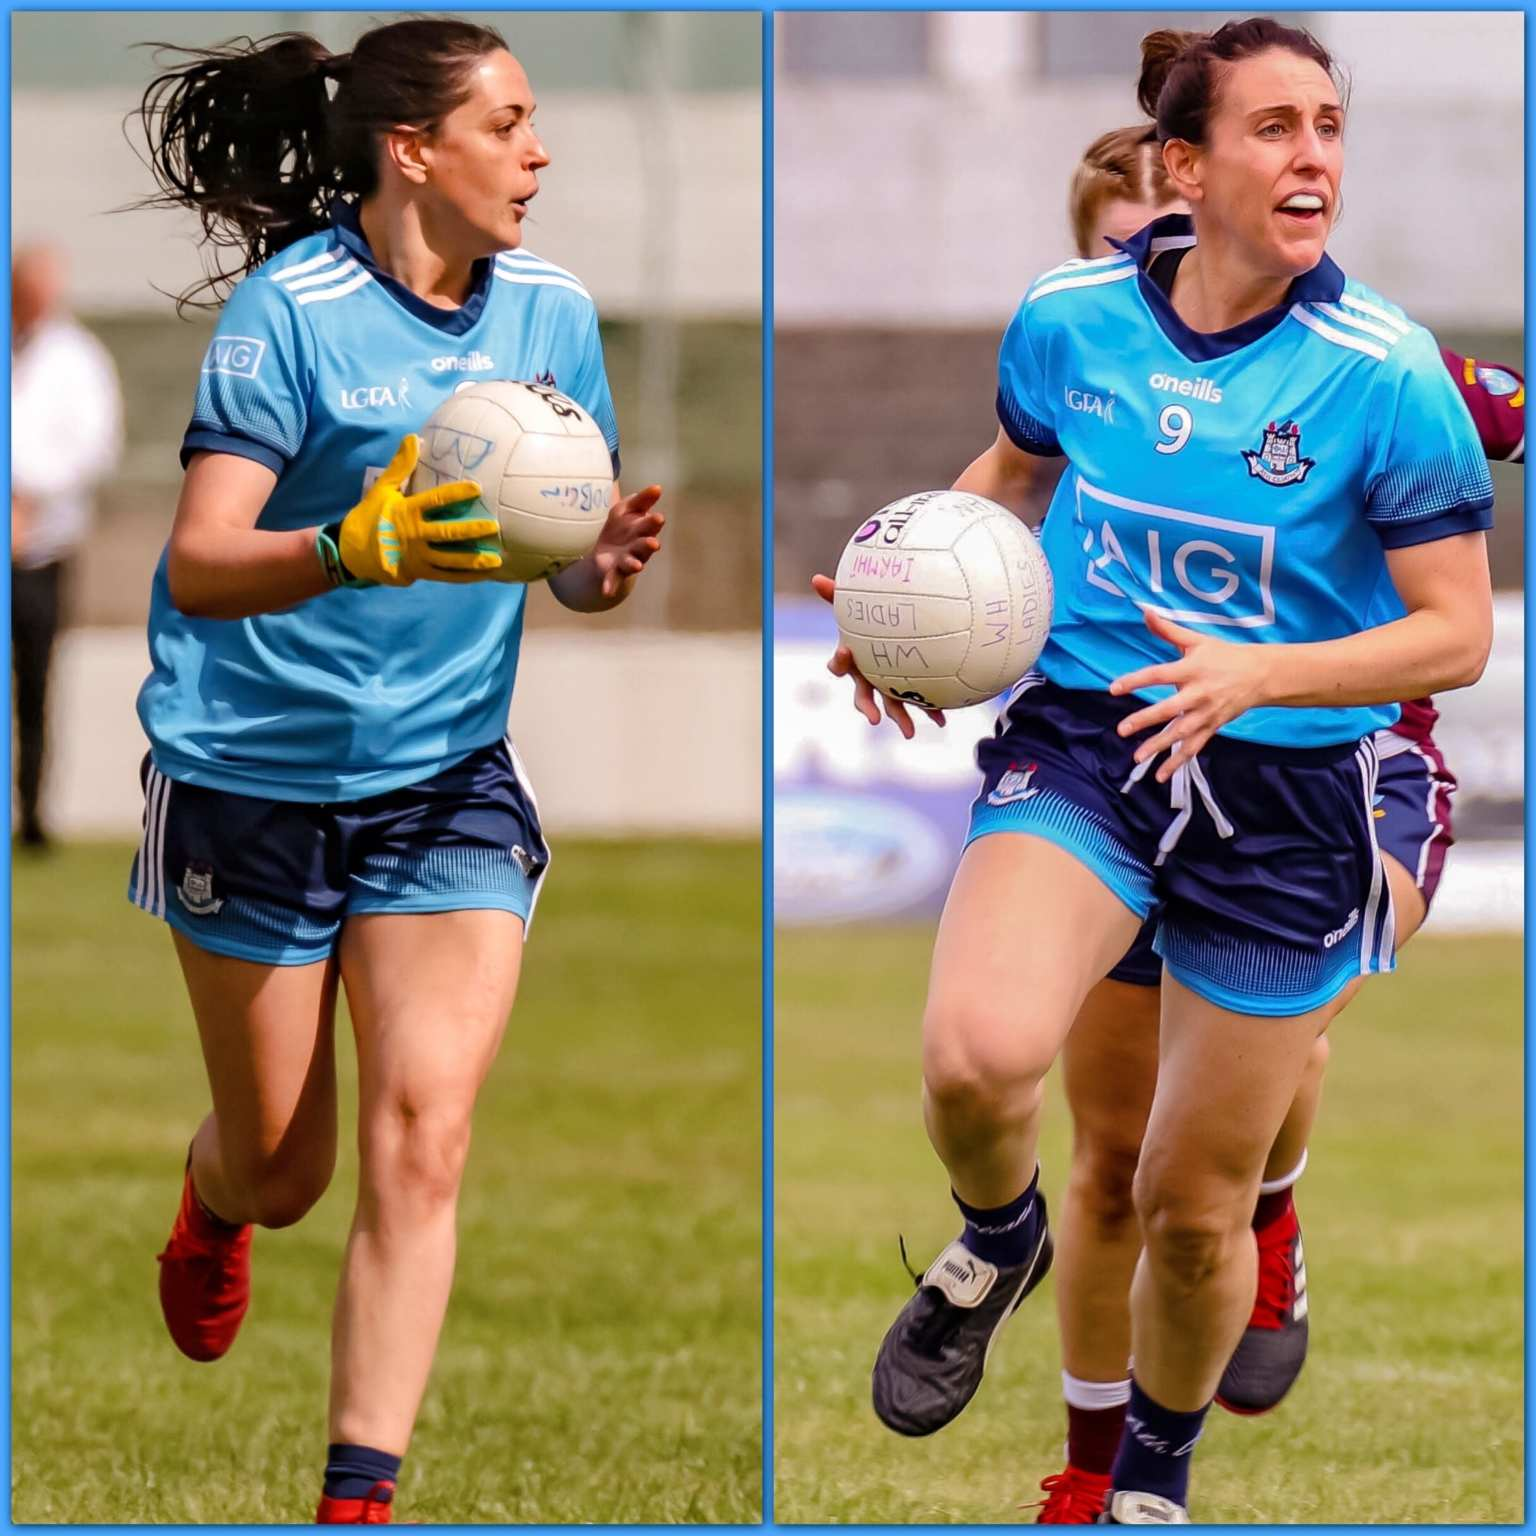 Dublin's Sinead Goldrick (L) and Siobhán McGrath (R) are among the nominees for the 2019 TG4 Players' Player Of The Year Award